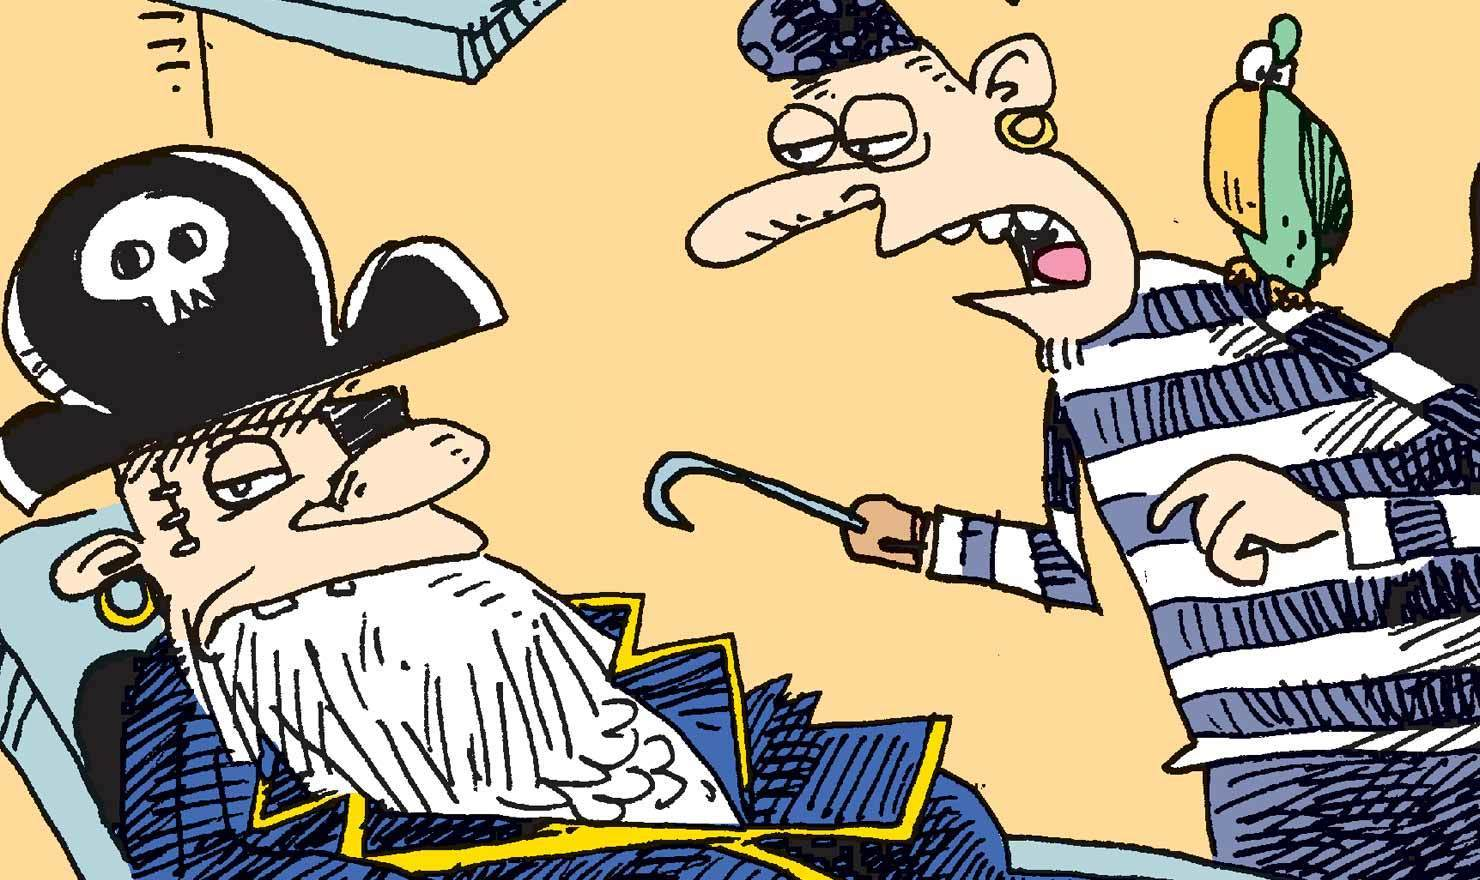 Talk Like A Pirate Day Won't Be Denied In These Comics, Matey